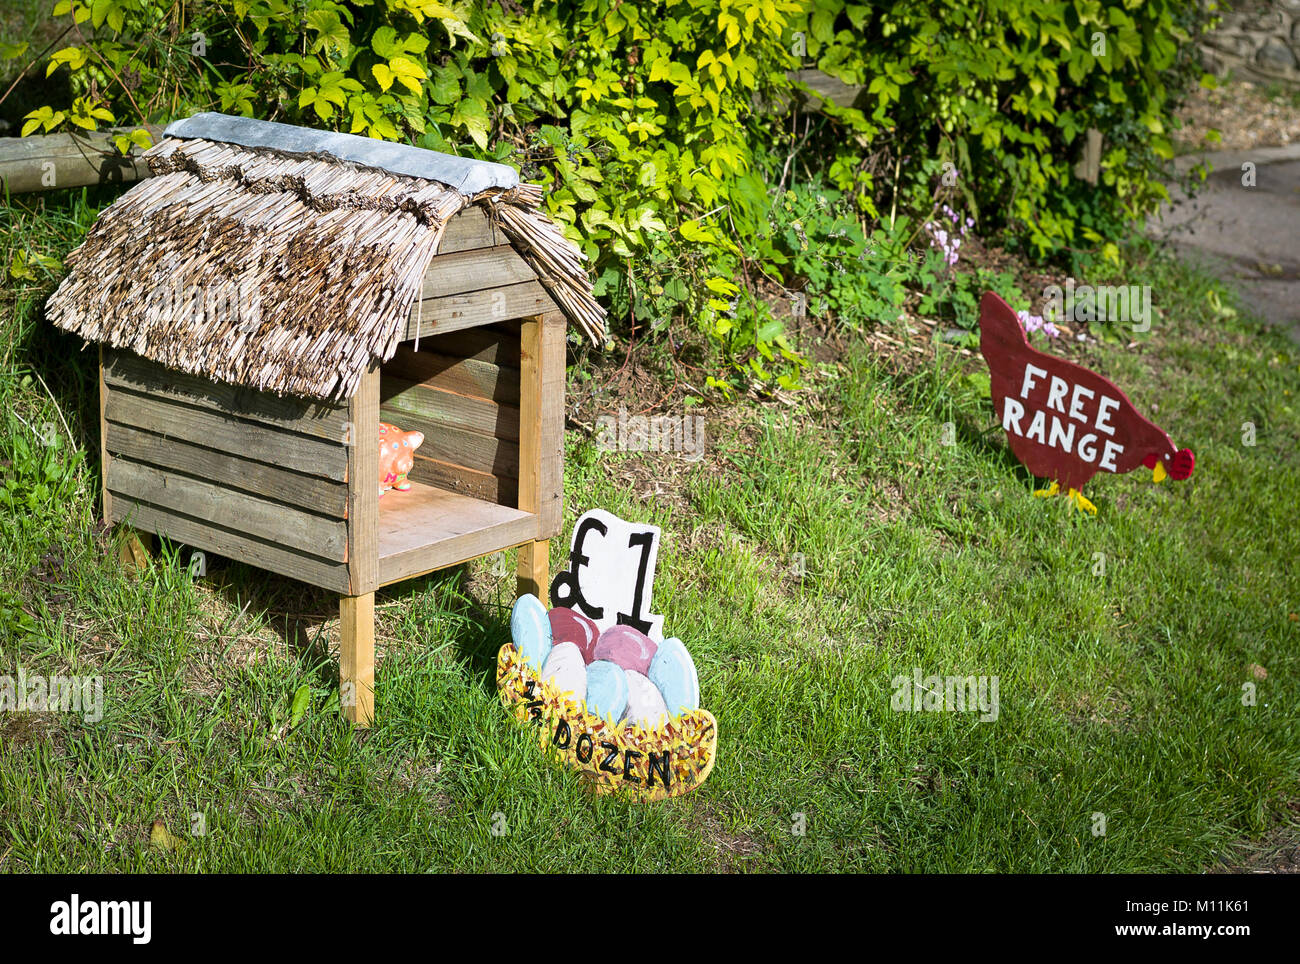 Point of self-service sale of surplus hens' eggs outisde a village private property in Wiltshire England UK - Stock Image